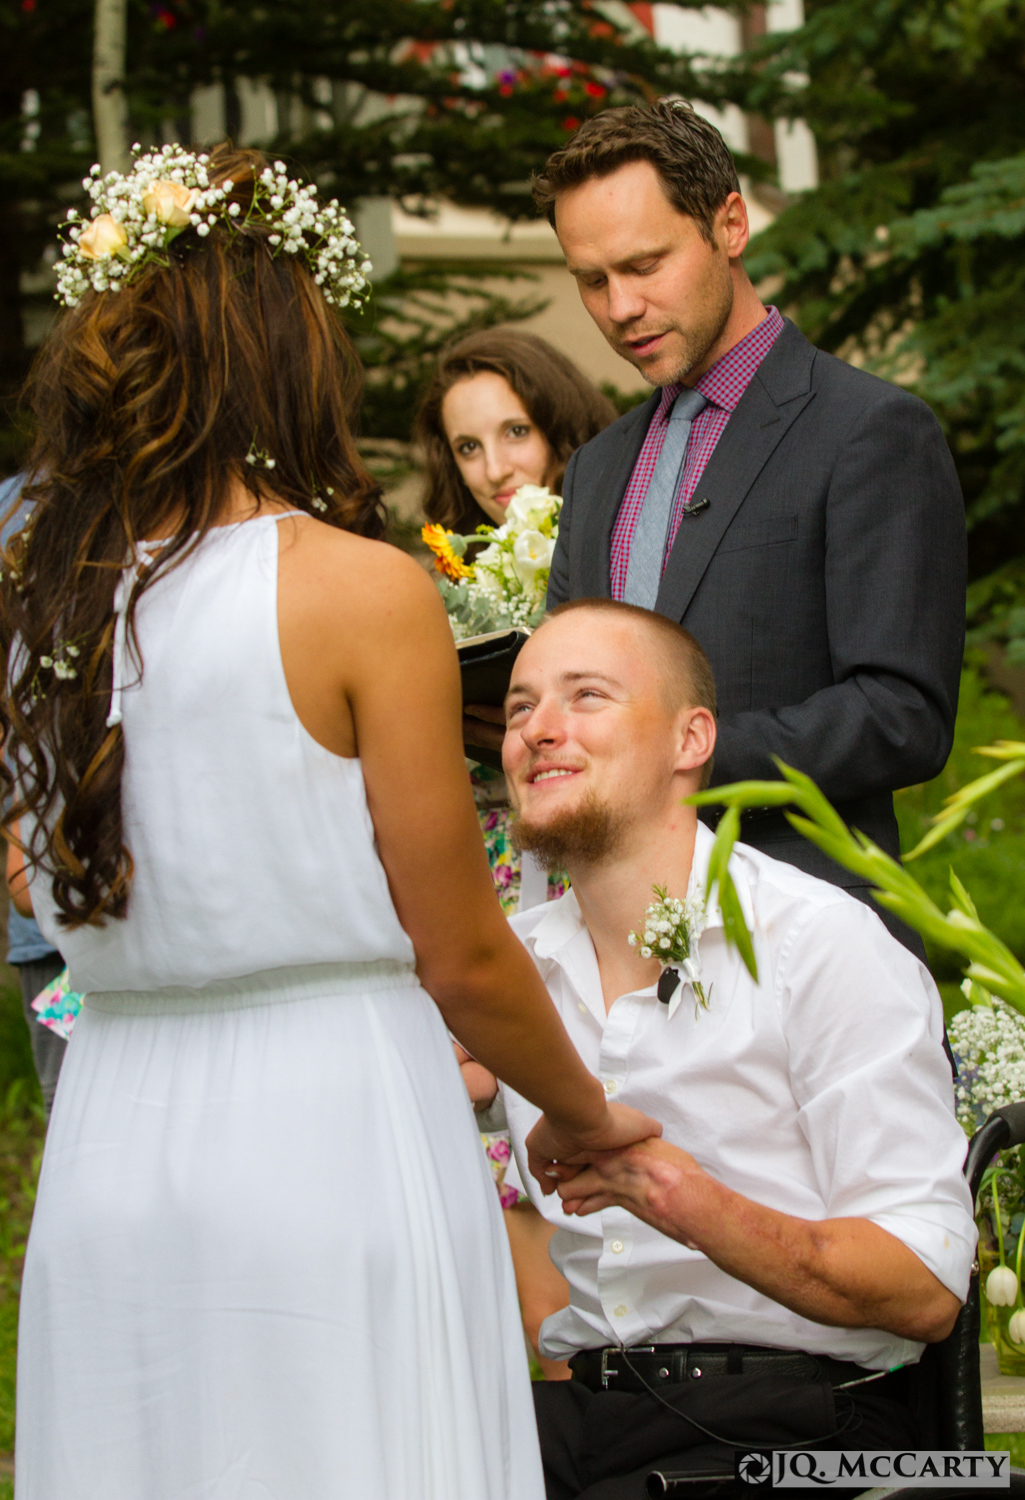 Cpl. Jason Hallett, center, looks into the eyes of his soon to be wife, Rachel MacVean, while Minister Erik Williams performs a last minute impromptu wedding ceremony for the couple Wednesday at the Sonnenalp Hotel in Vail.